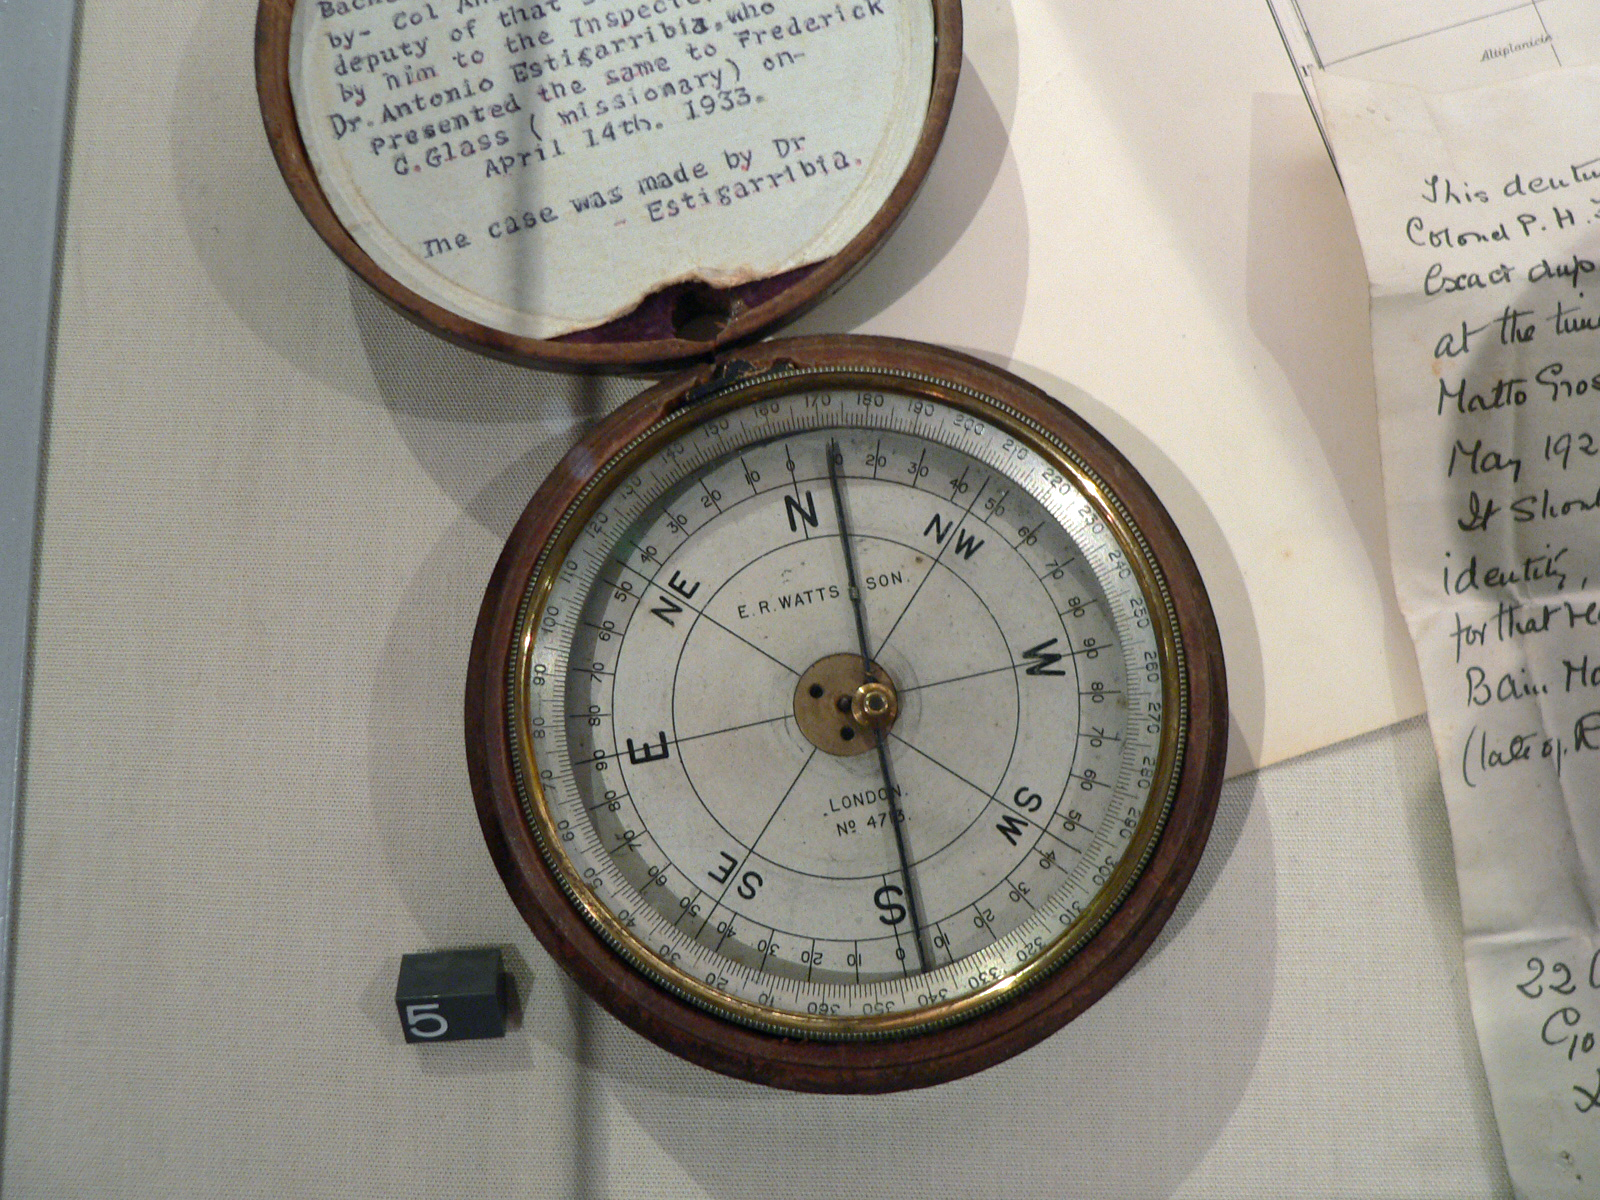 Percy Fawcett's Theodolite Compass